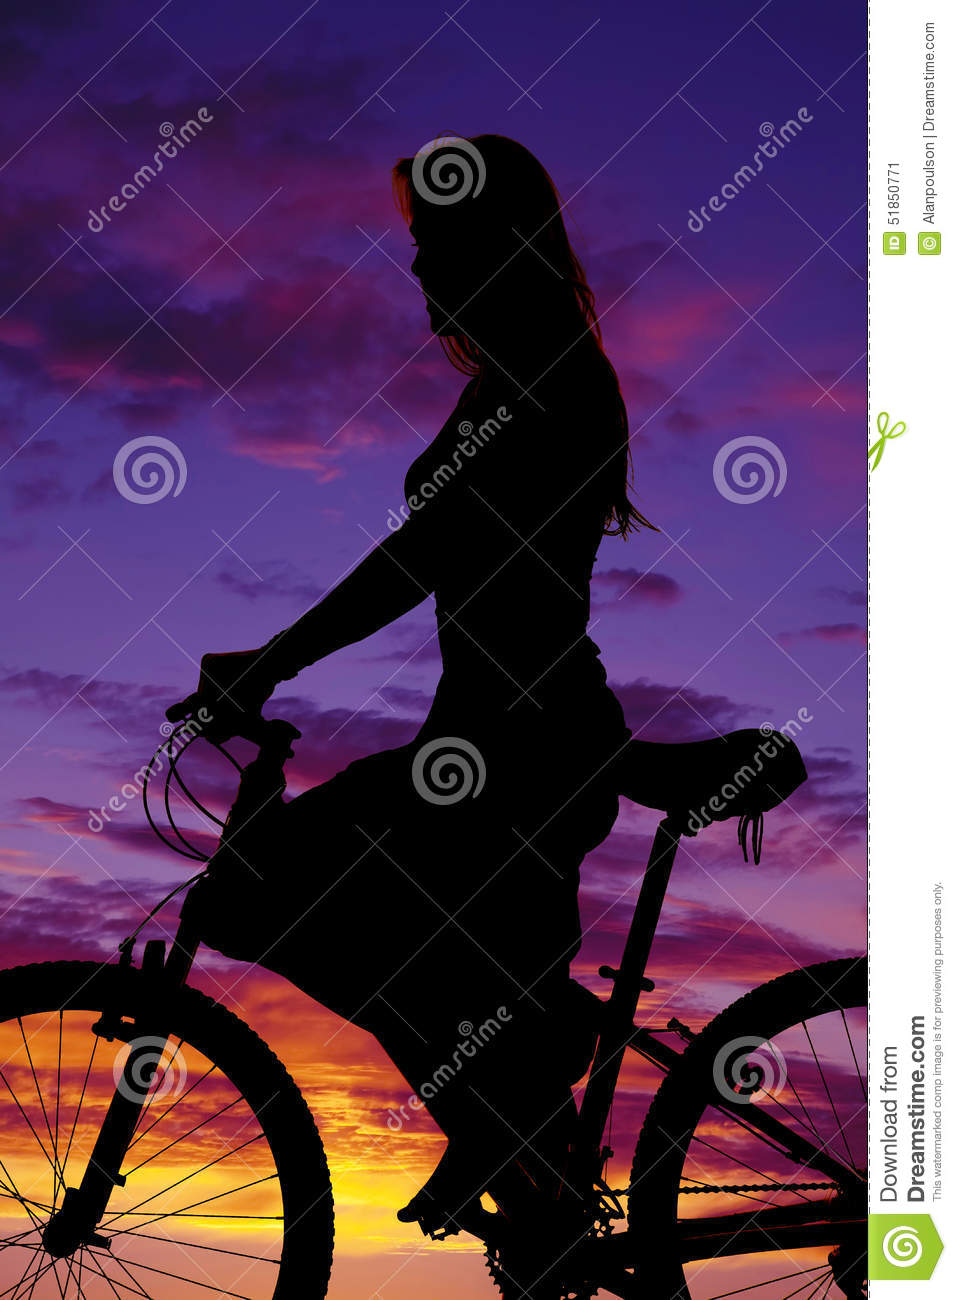 Silhouette of a woman on a bike up close